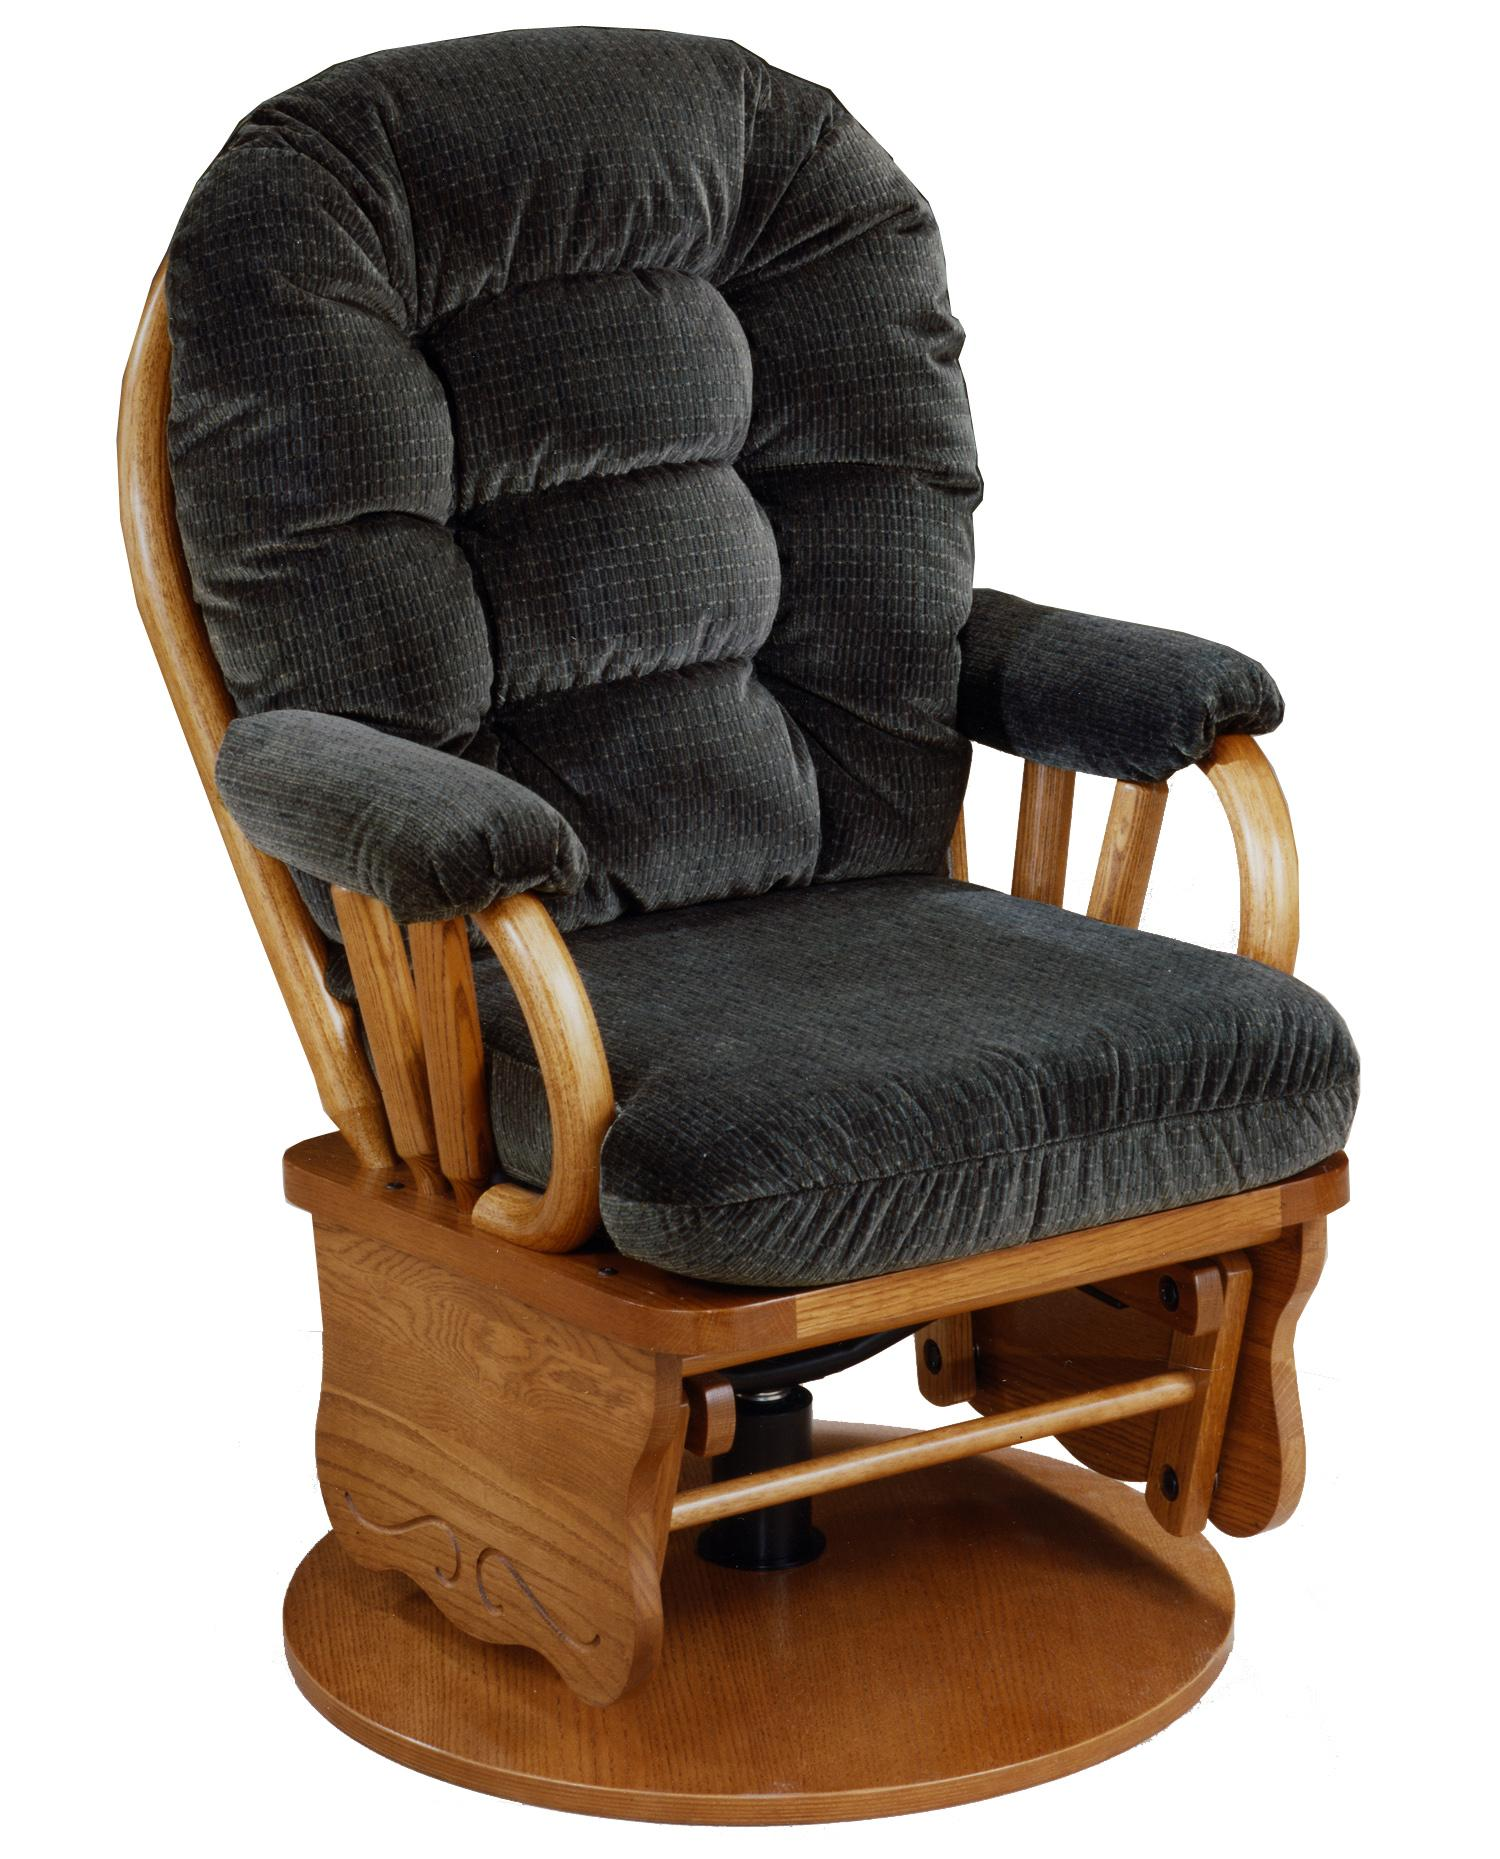 Best Home Furnishings Glide Rocker and Ottomans Bedazzle Swivel Glide Rocker - Item Number: C8109MO